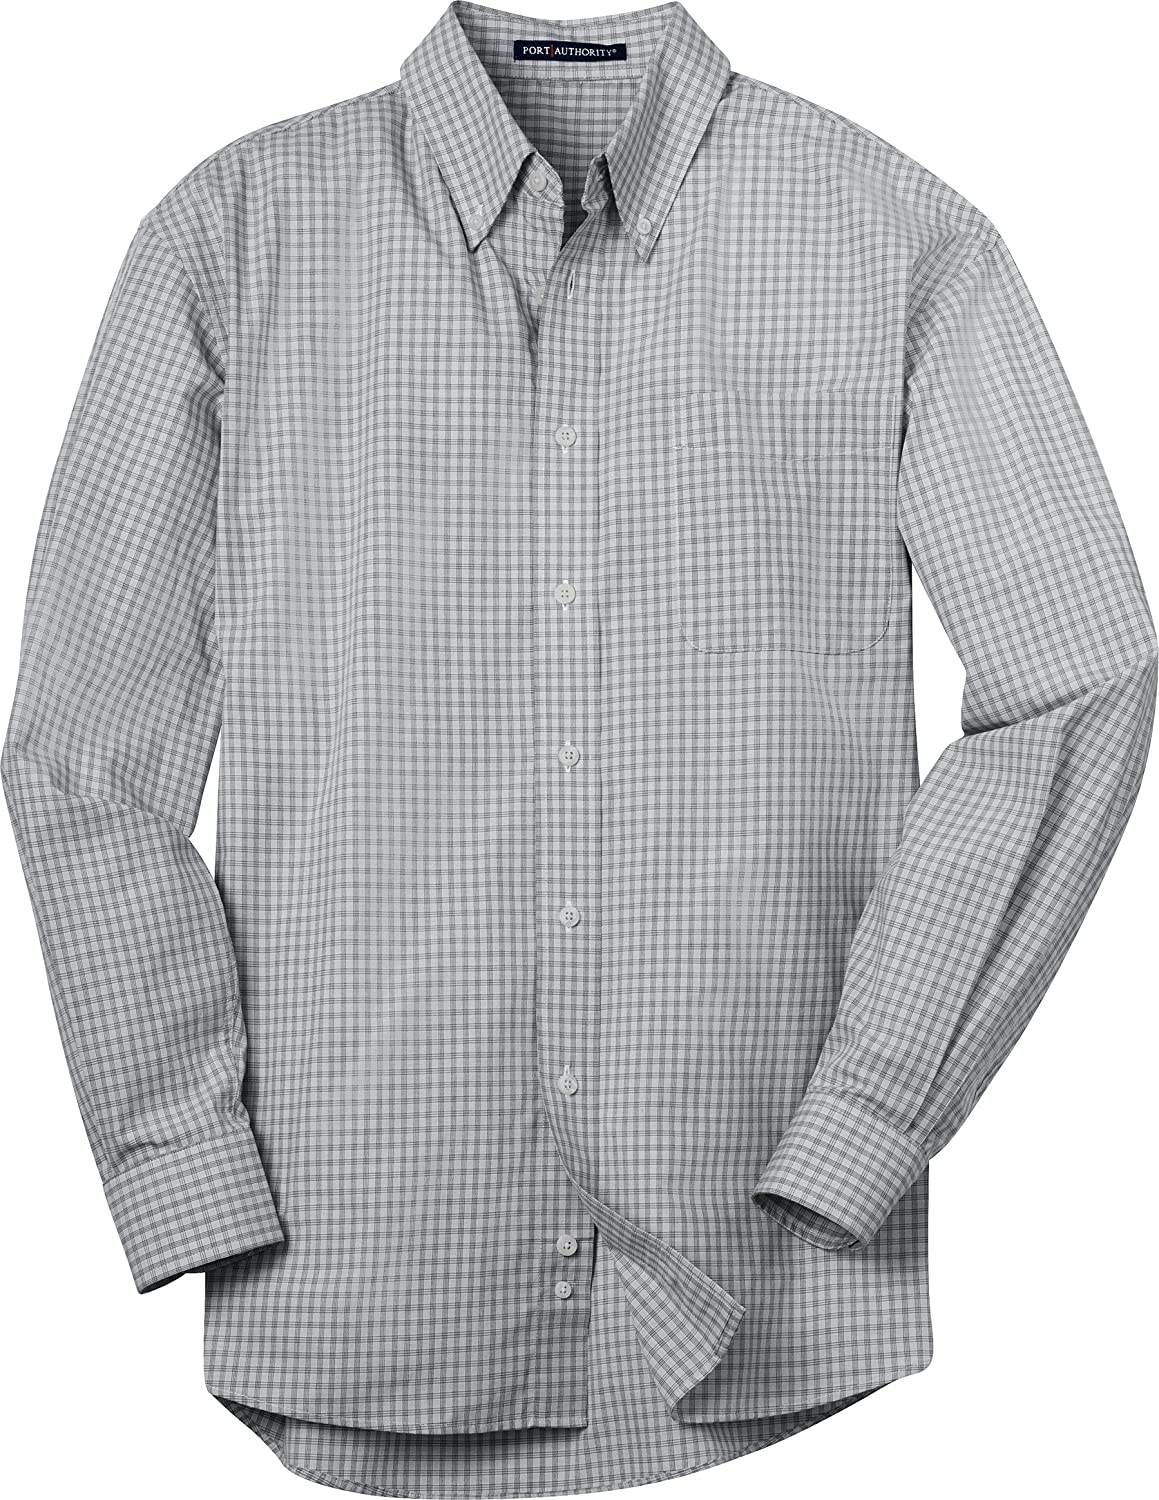 Port Authority Plaid Pattern Easy Care Shirt S639